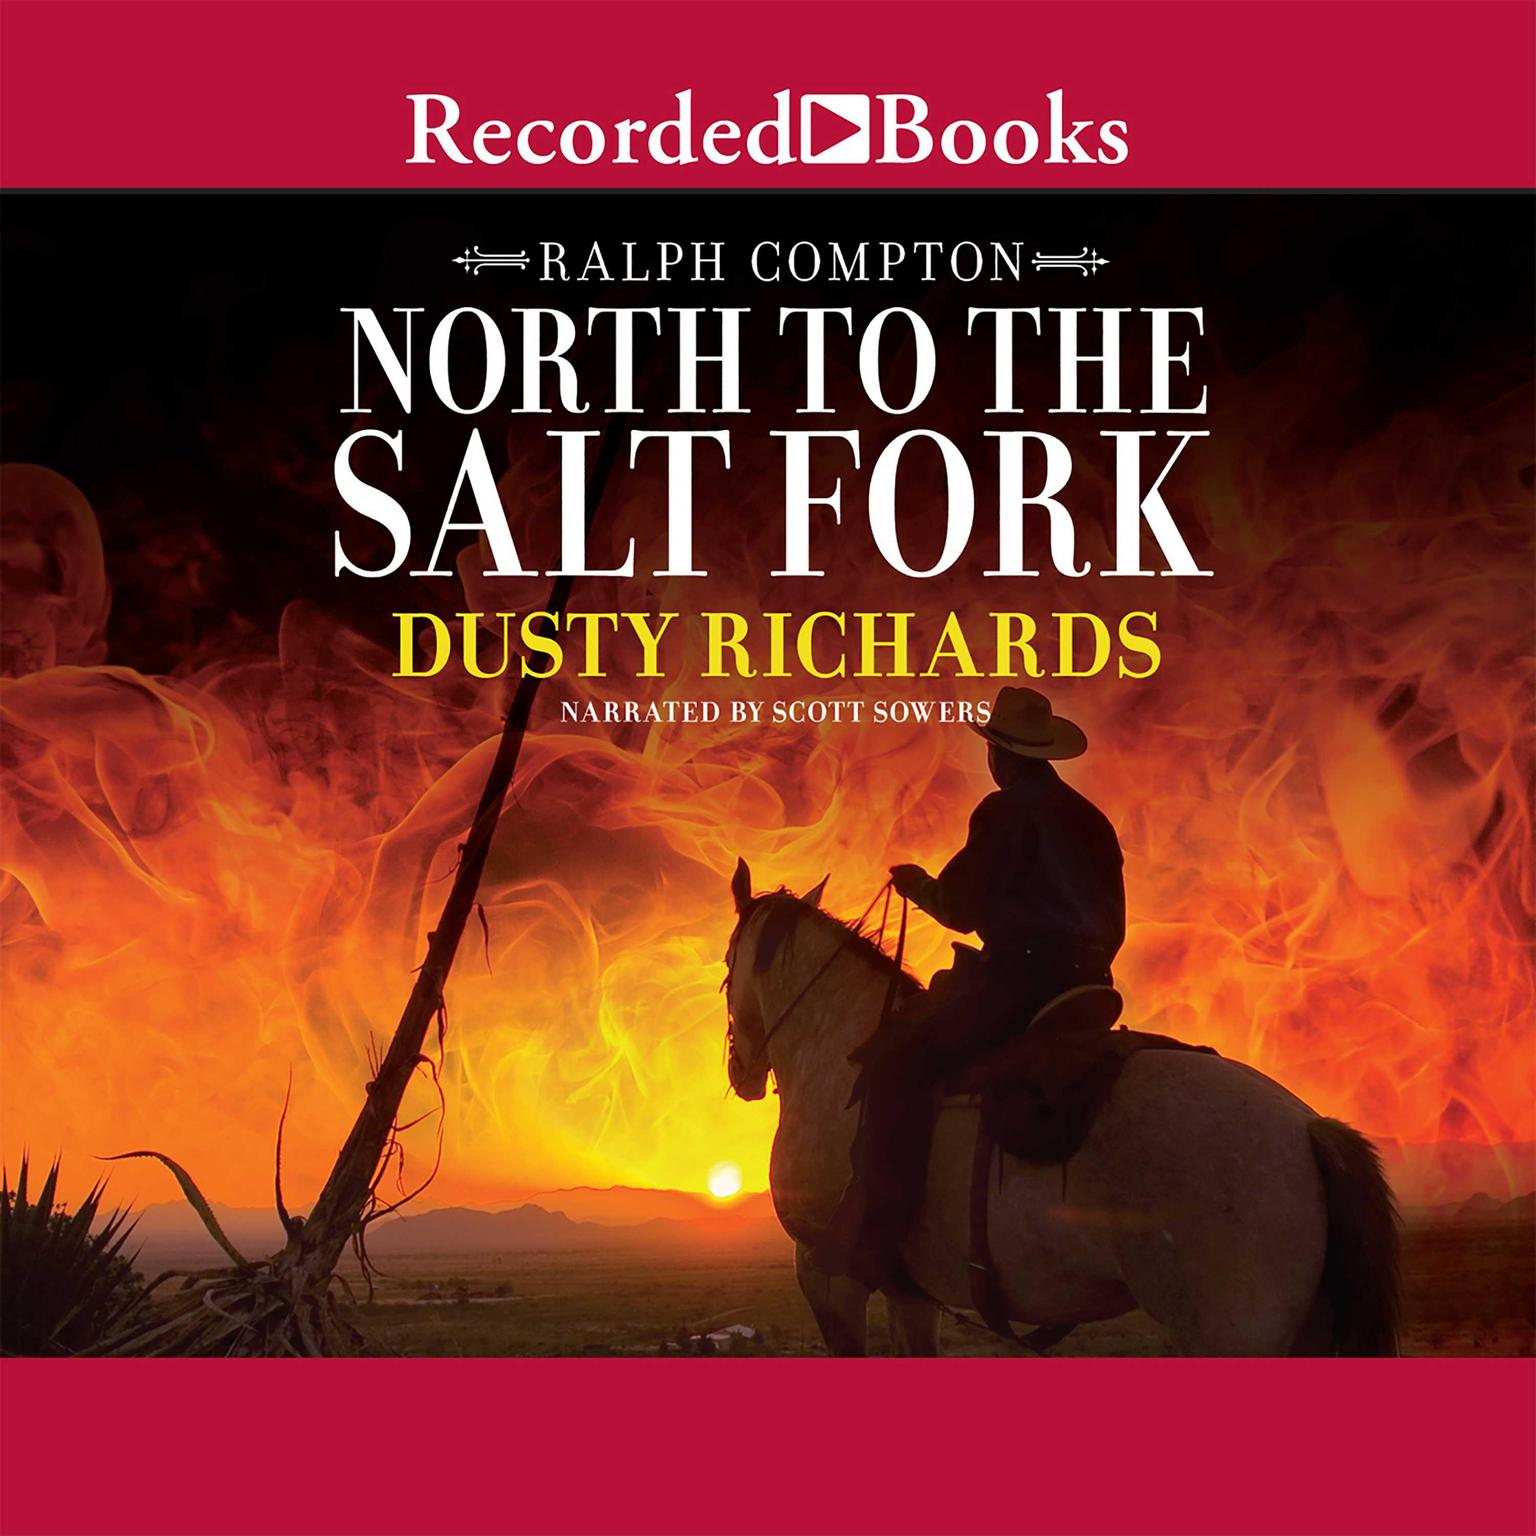 Printable North to the Salt Fork: A Ralph Compton Novel Audiobook Cover Art